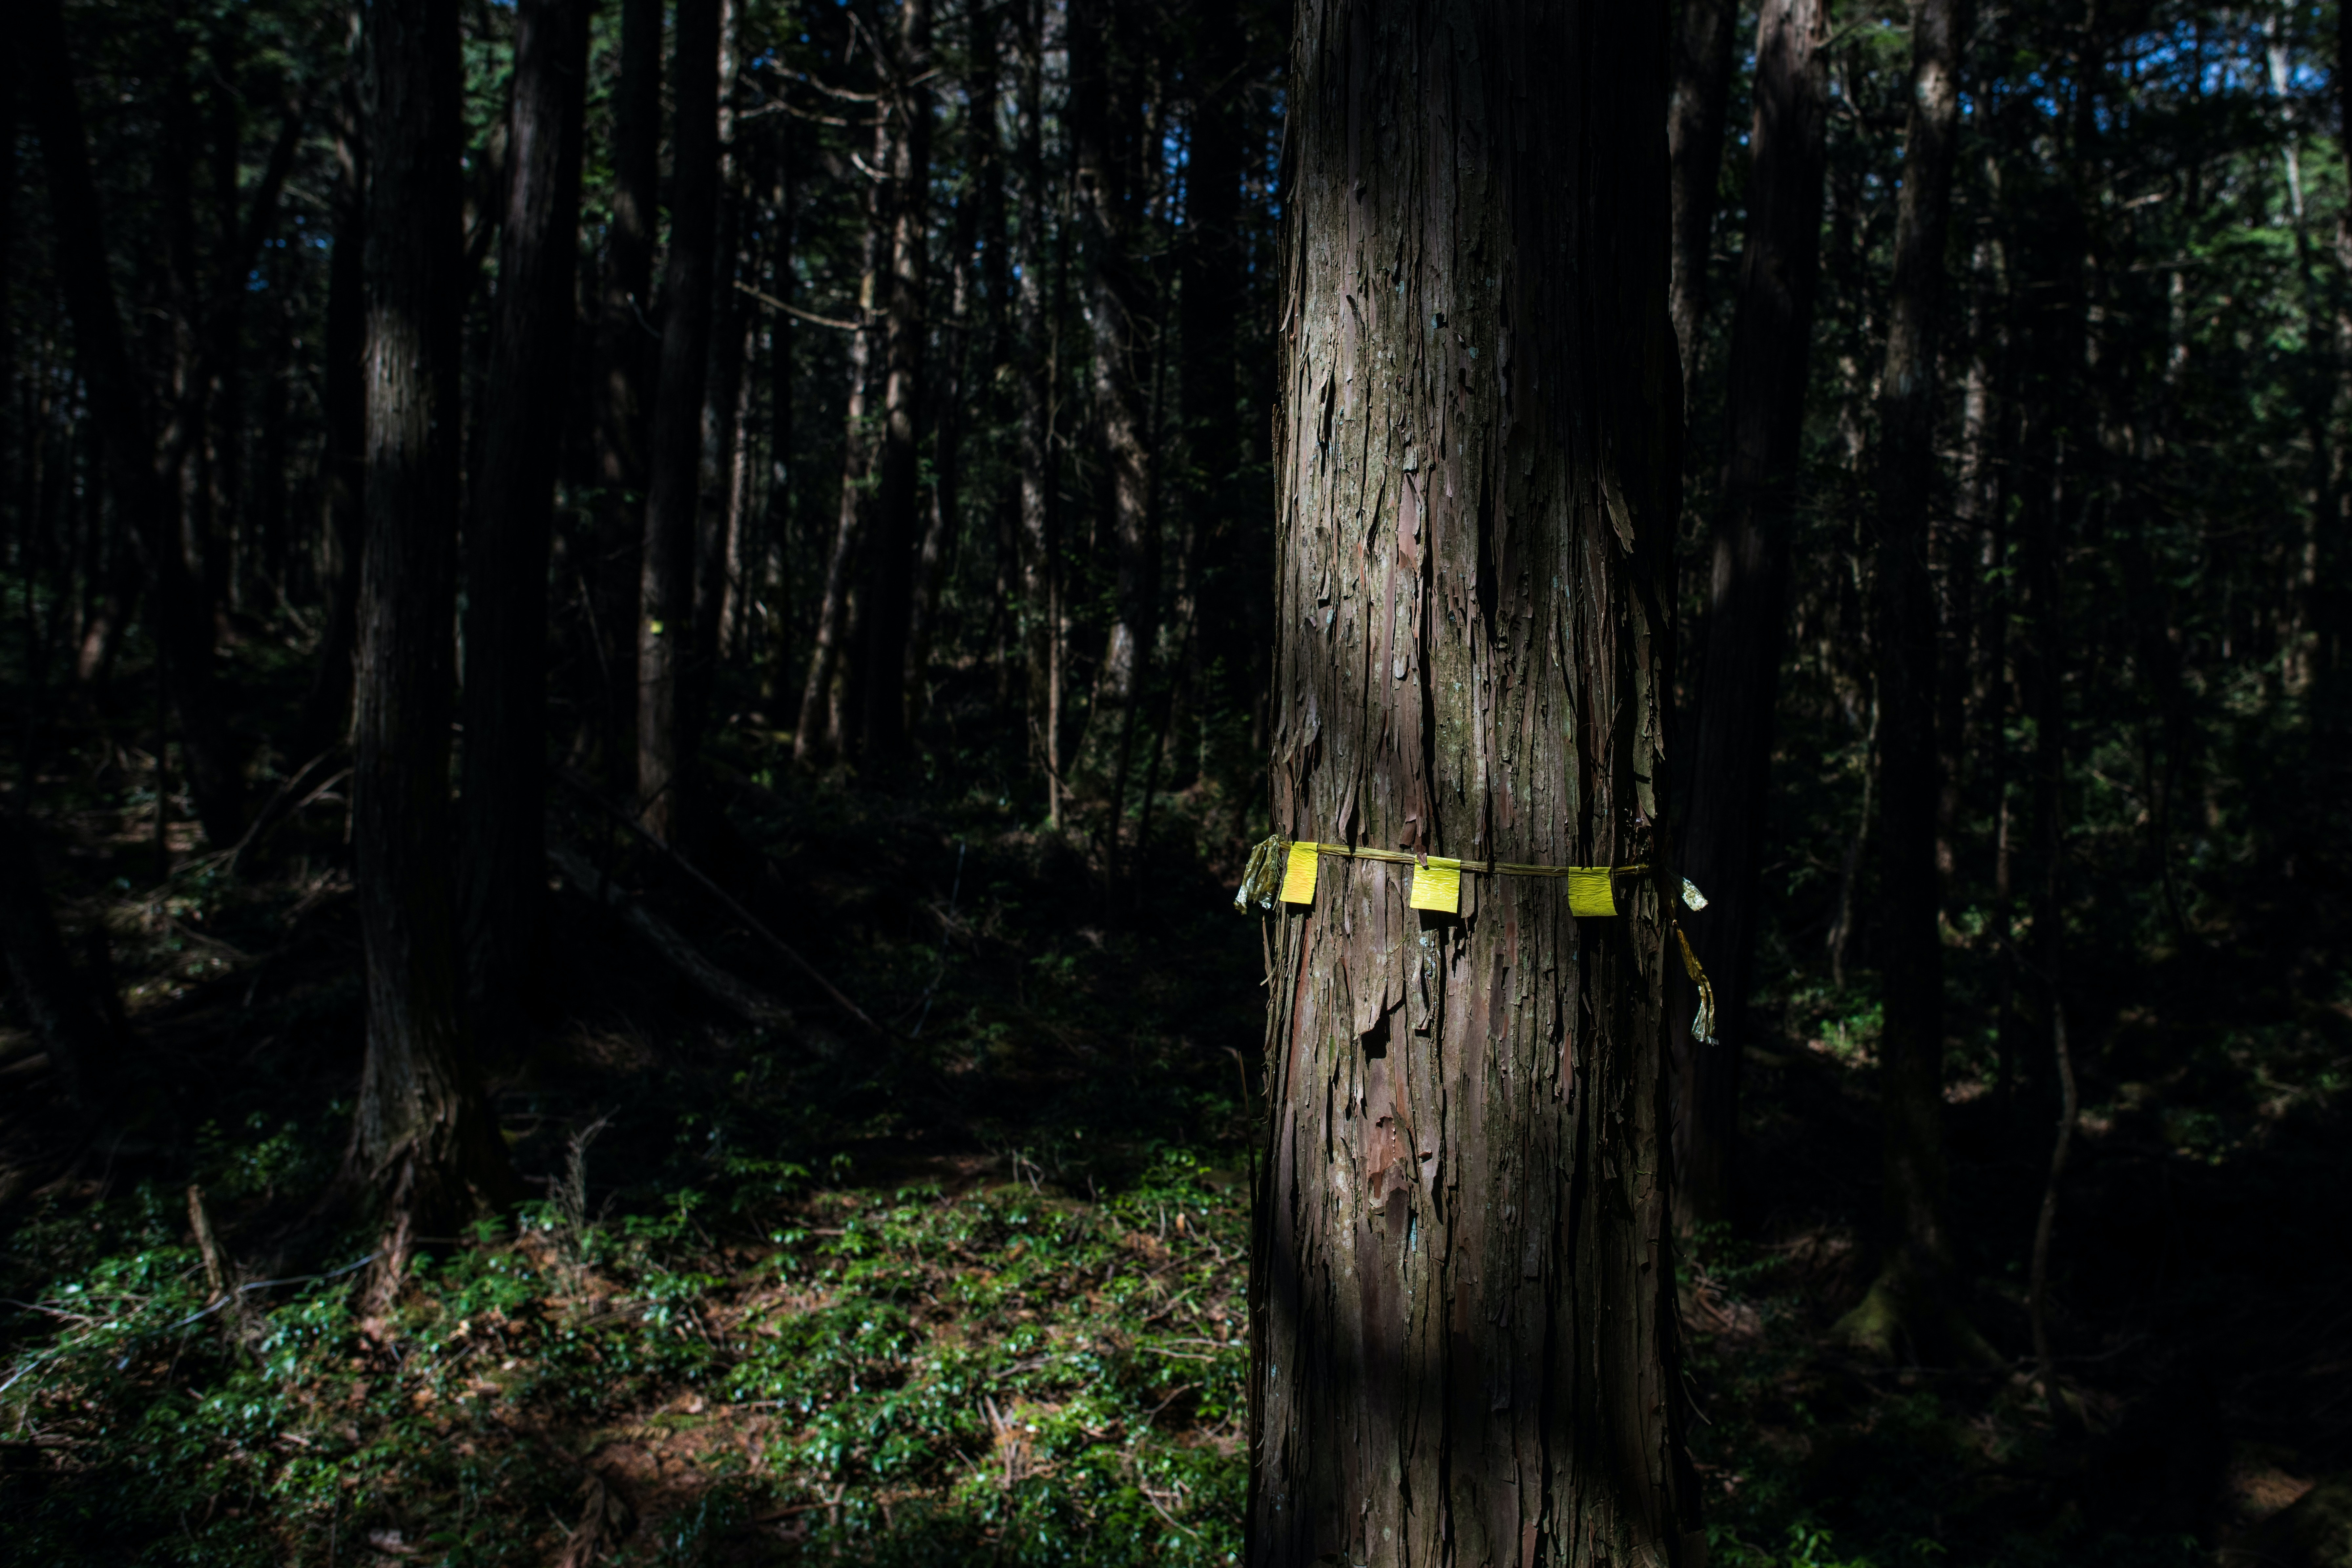 These Real Stories From The Japanese Suicide Forest Will